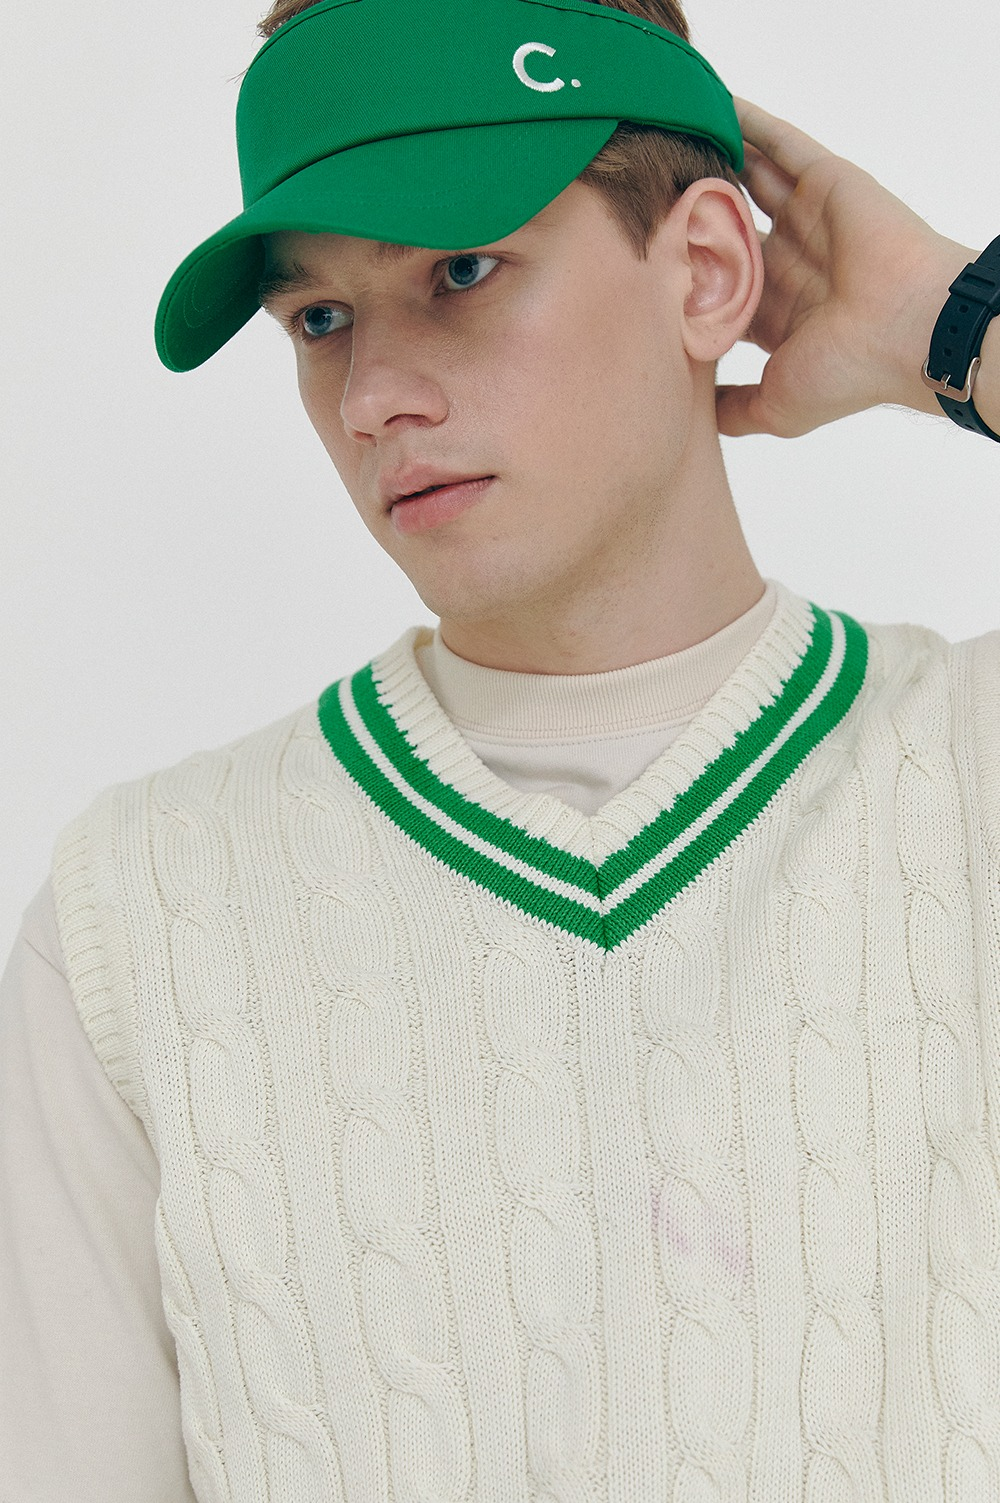 clove - [SS21 clove] Cotton Sun Visor Green